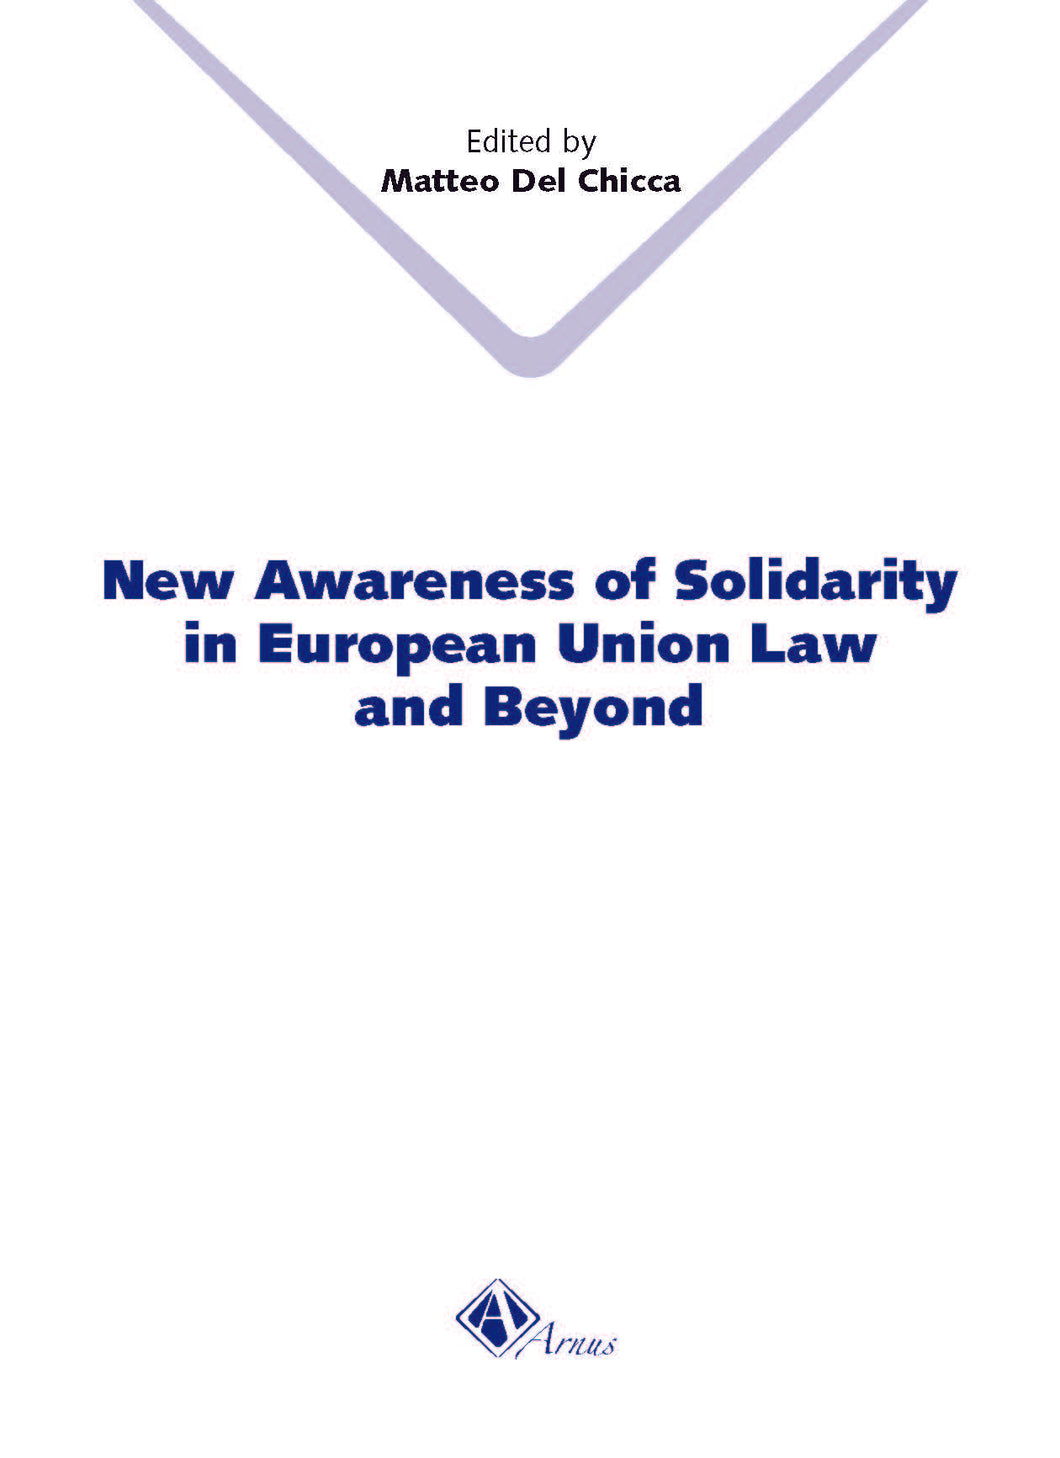 New Awareness of Solidarity in European Union Law and Beyond